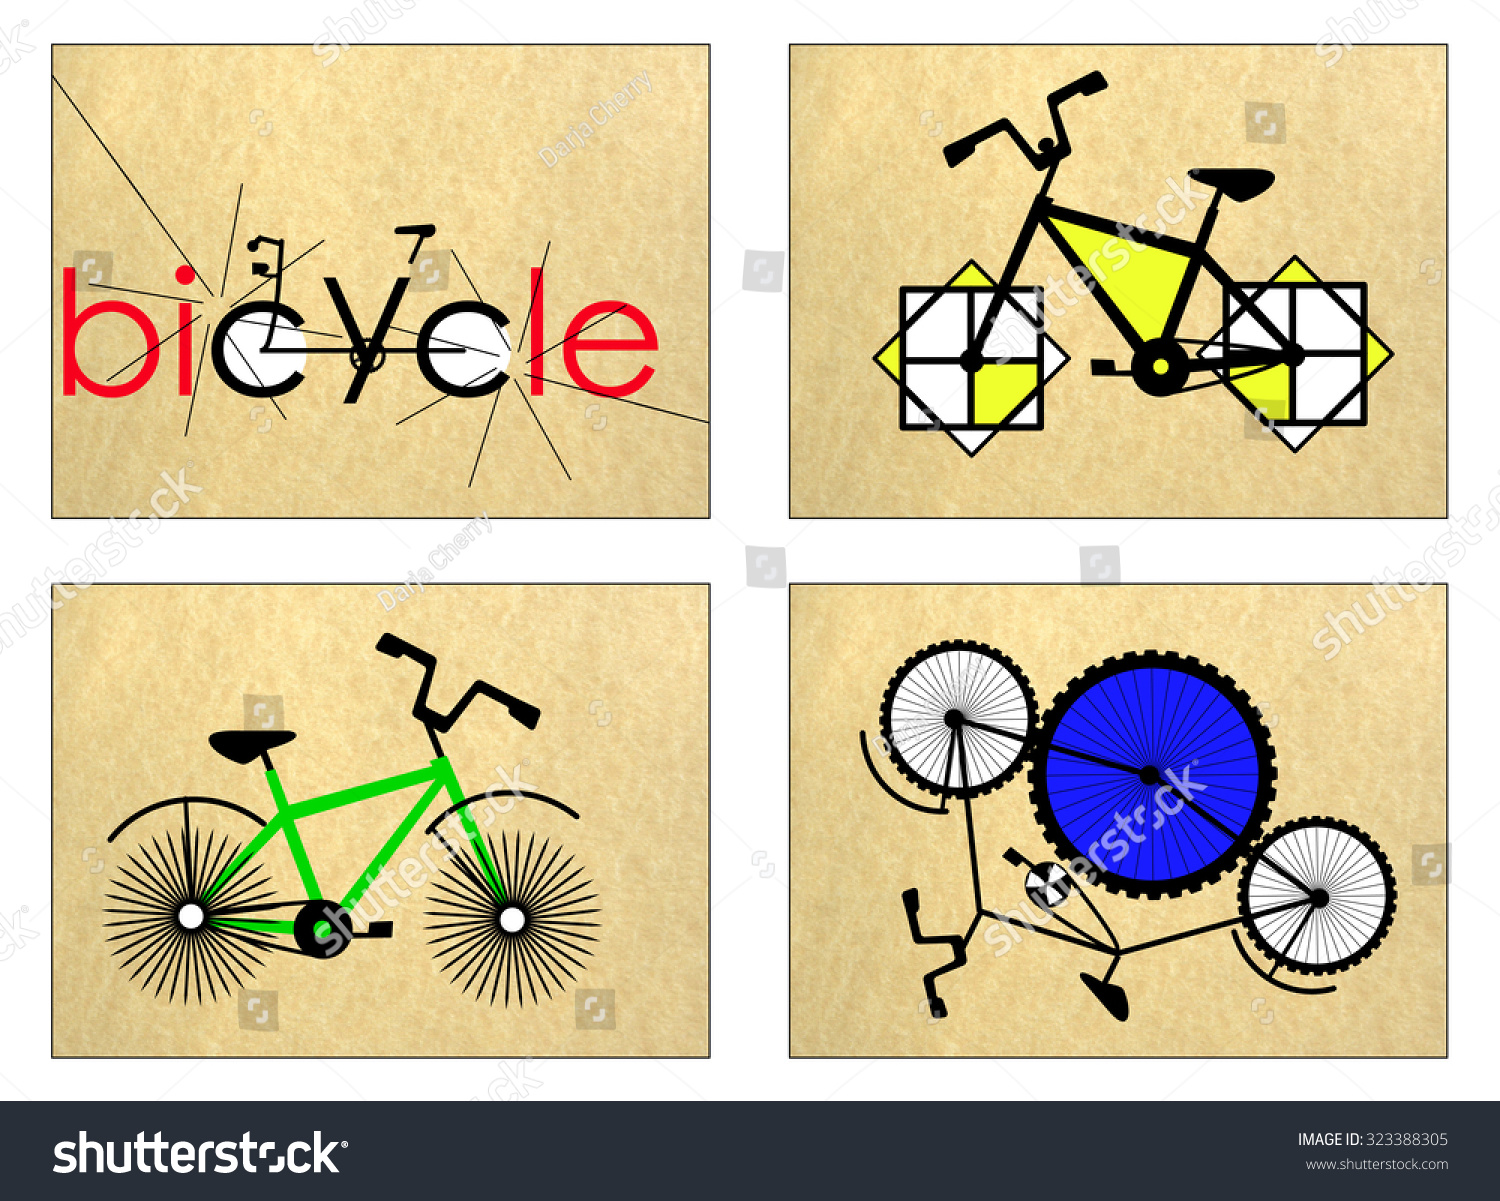 Stylized Unreal Fantasy Bicycle Postcards Business Stock ...